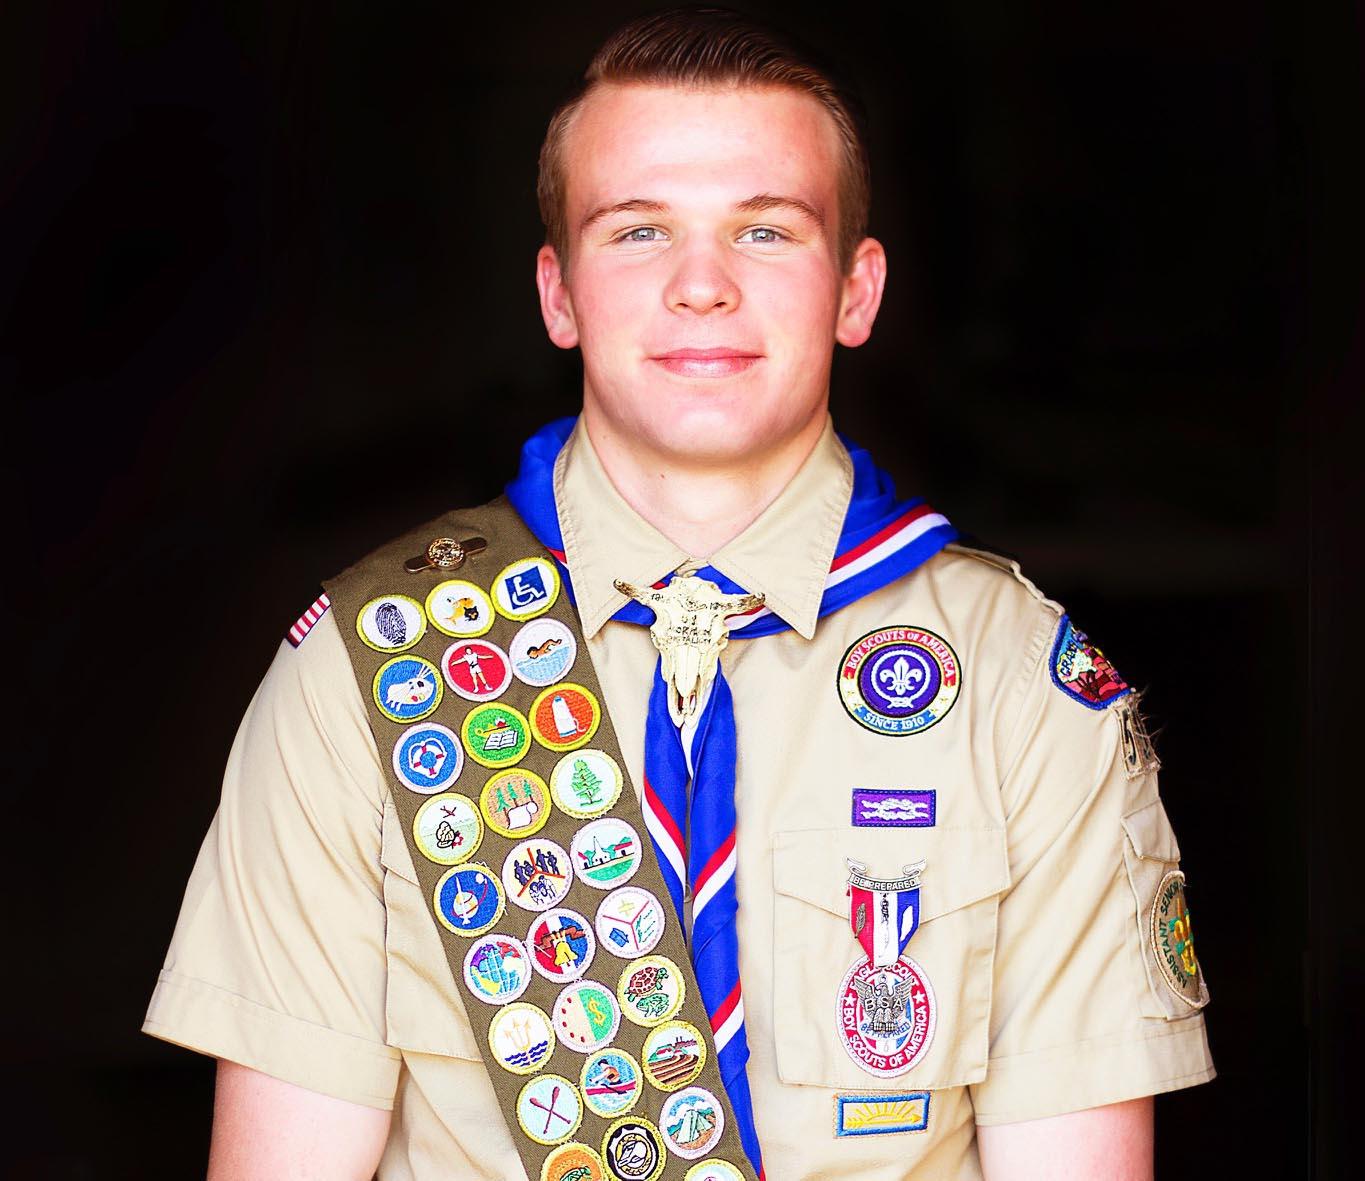 Mesa Boy Scout Earns Seventh Eagle Palm